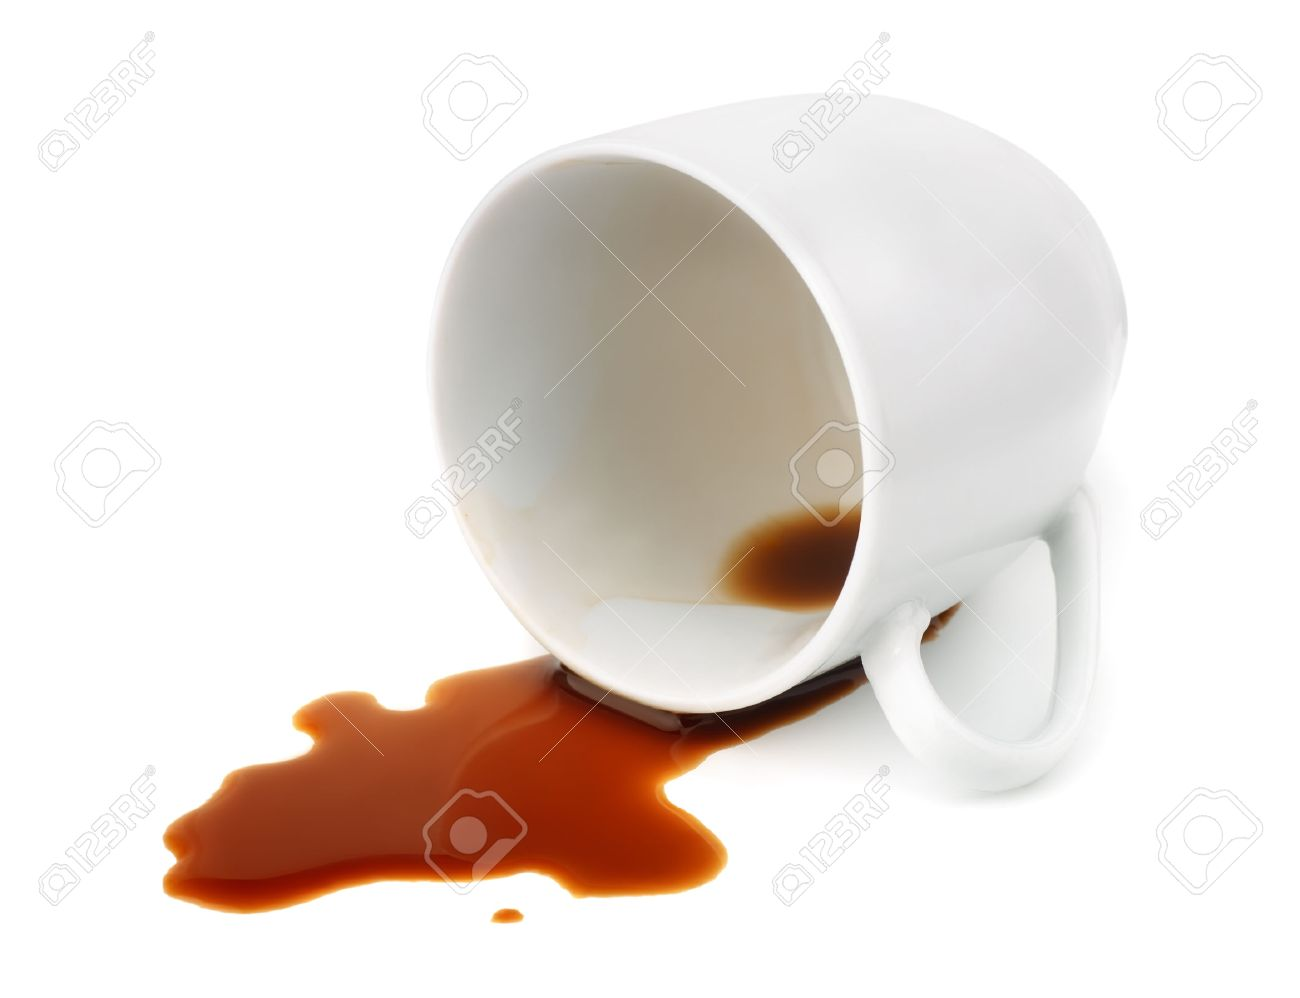 Coffee On White Isolated Spilled Fallen With Cup CxErdQWBeo